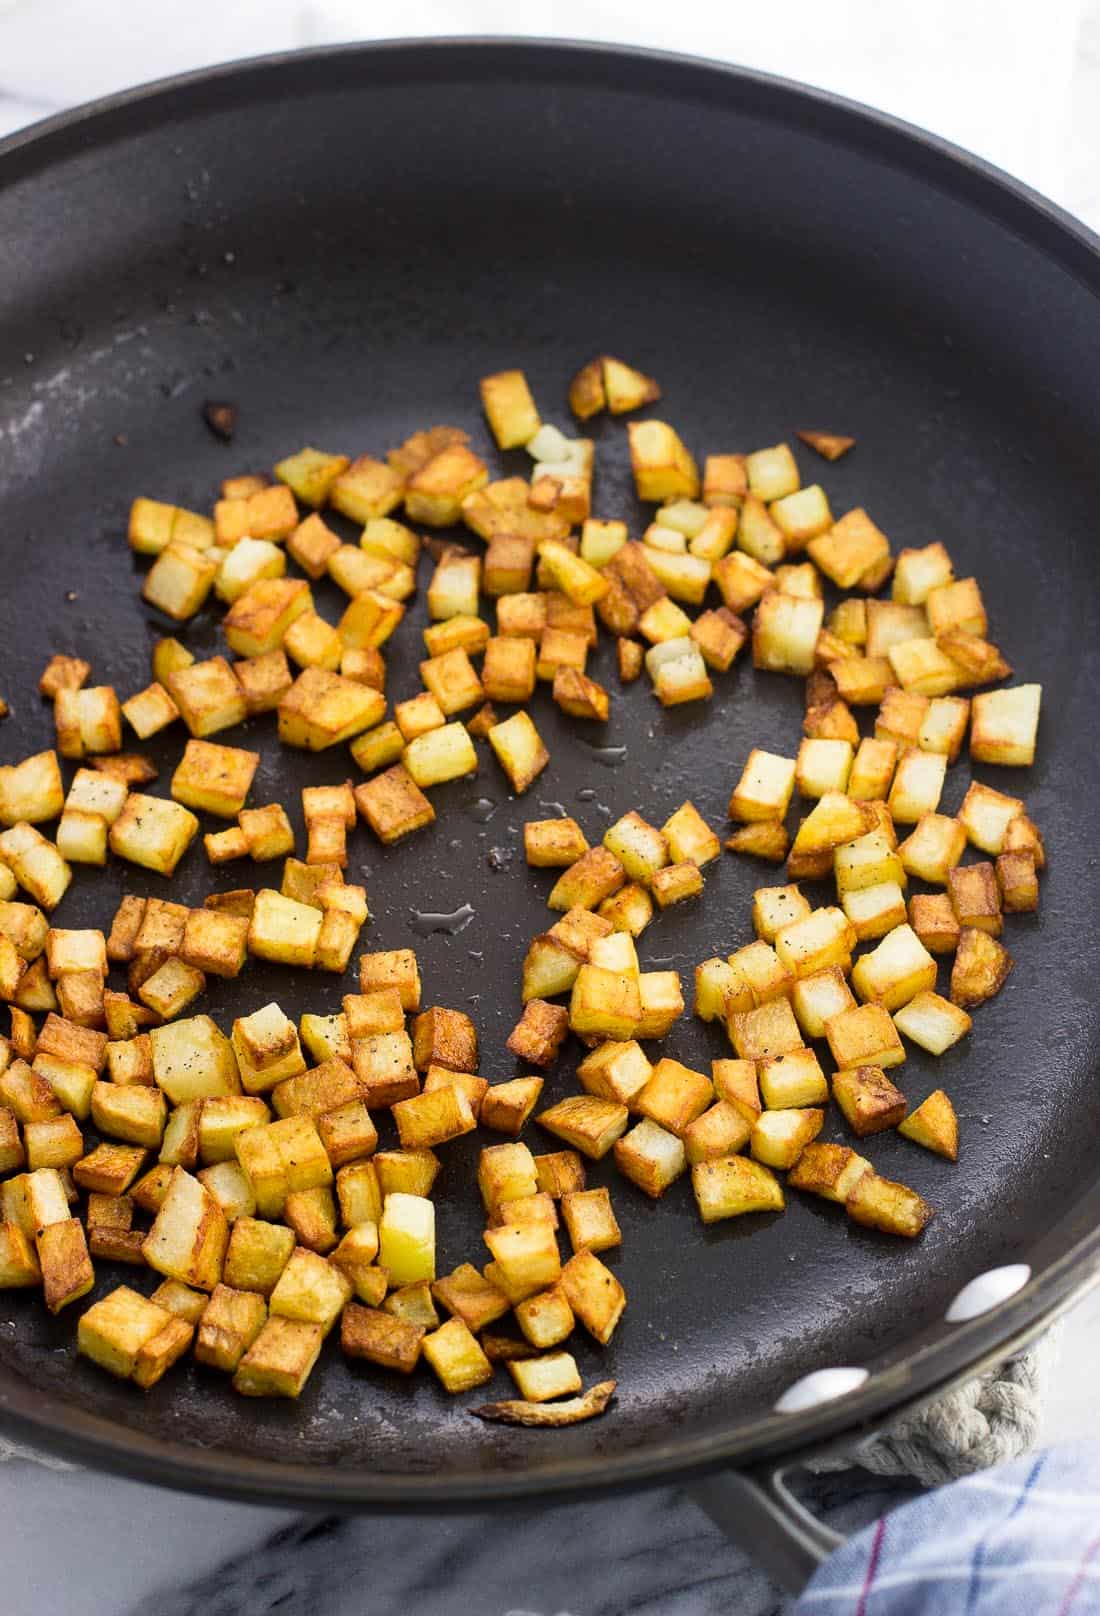 Small cubes of roasted potatoes in a skillet